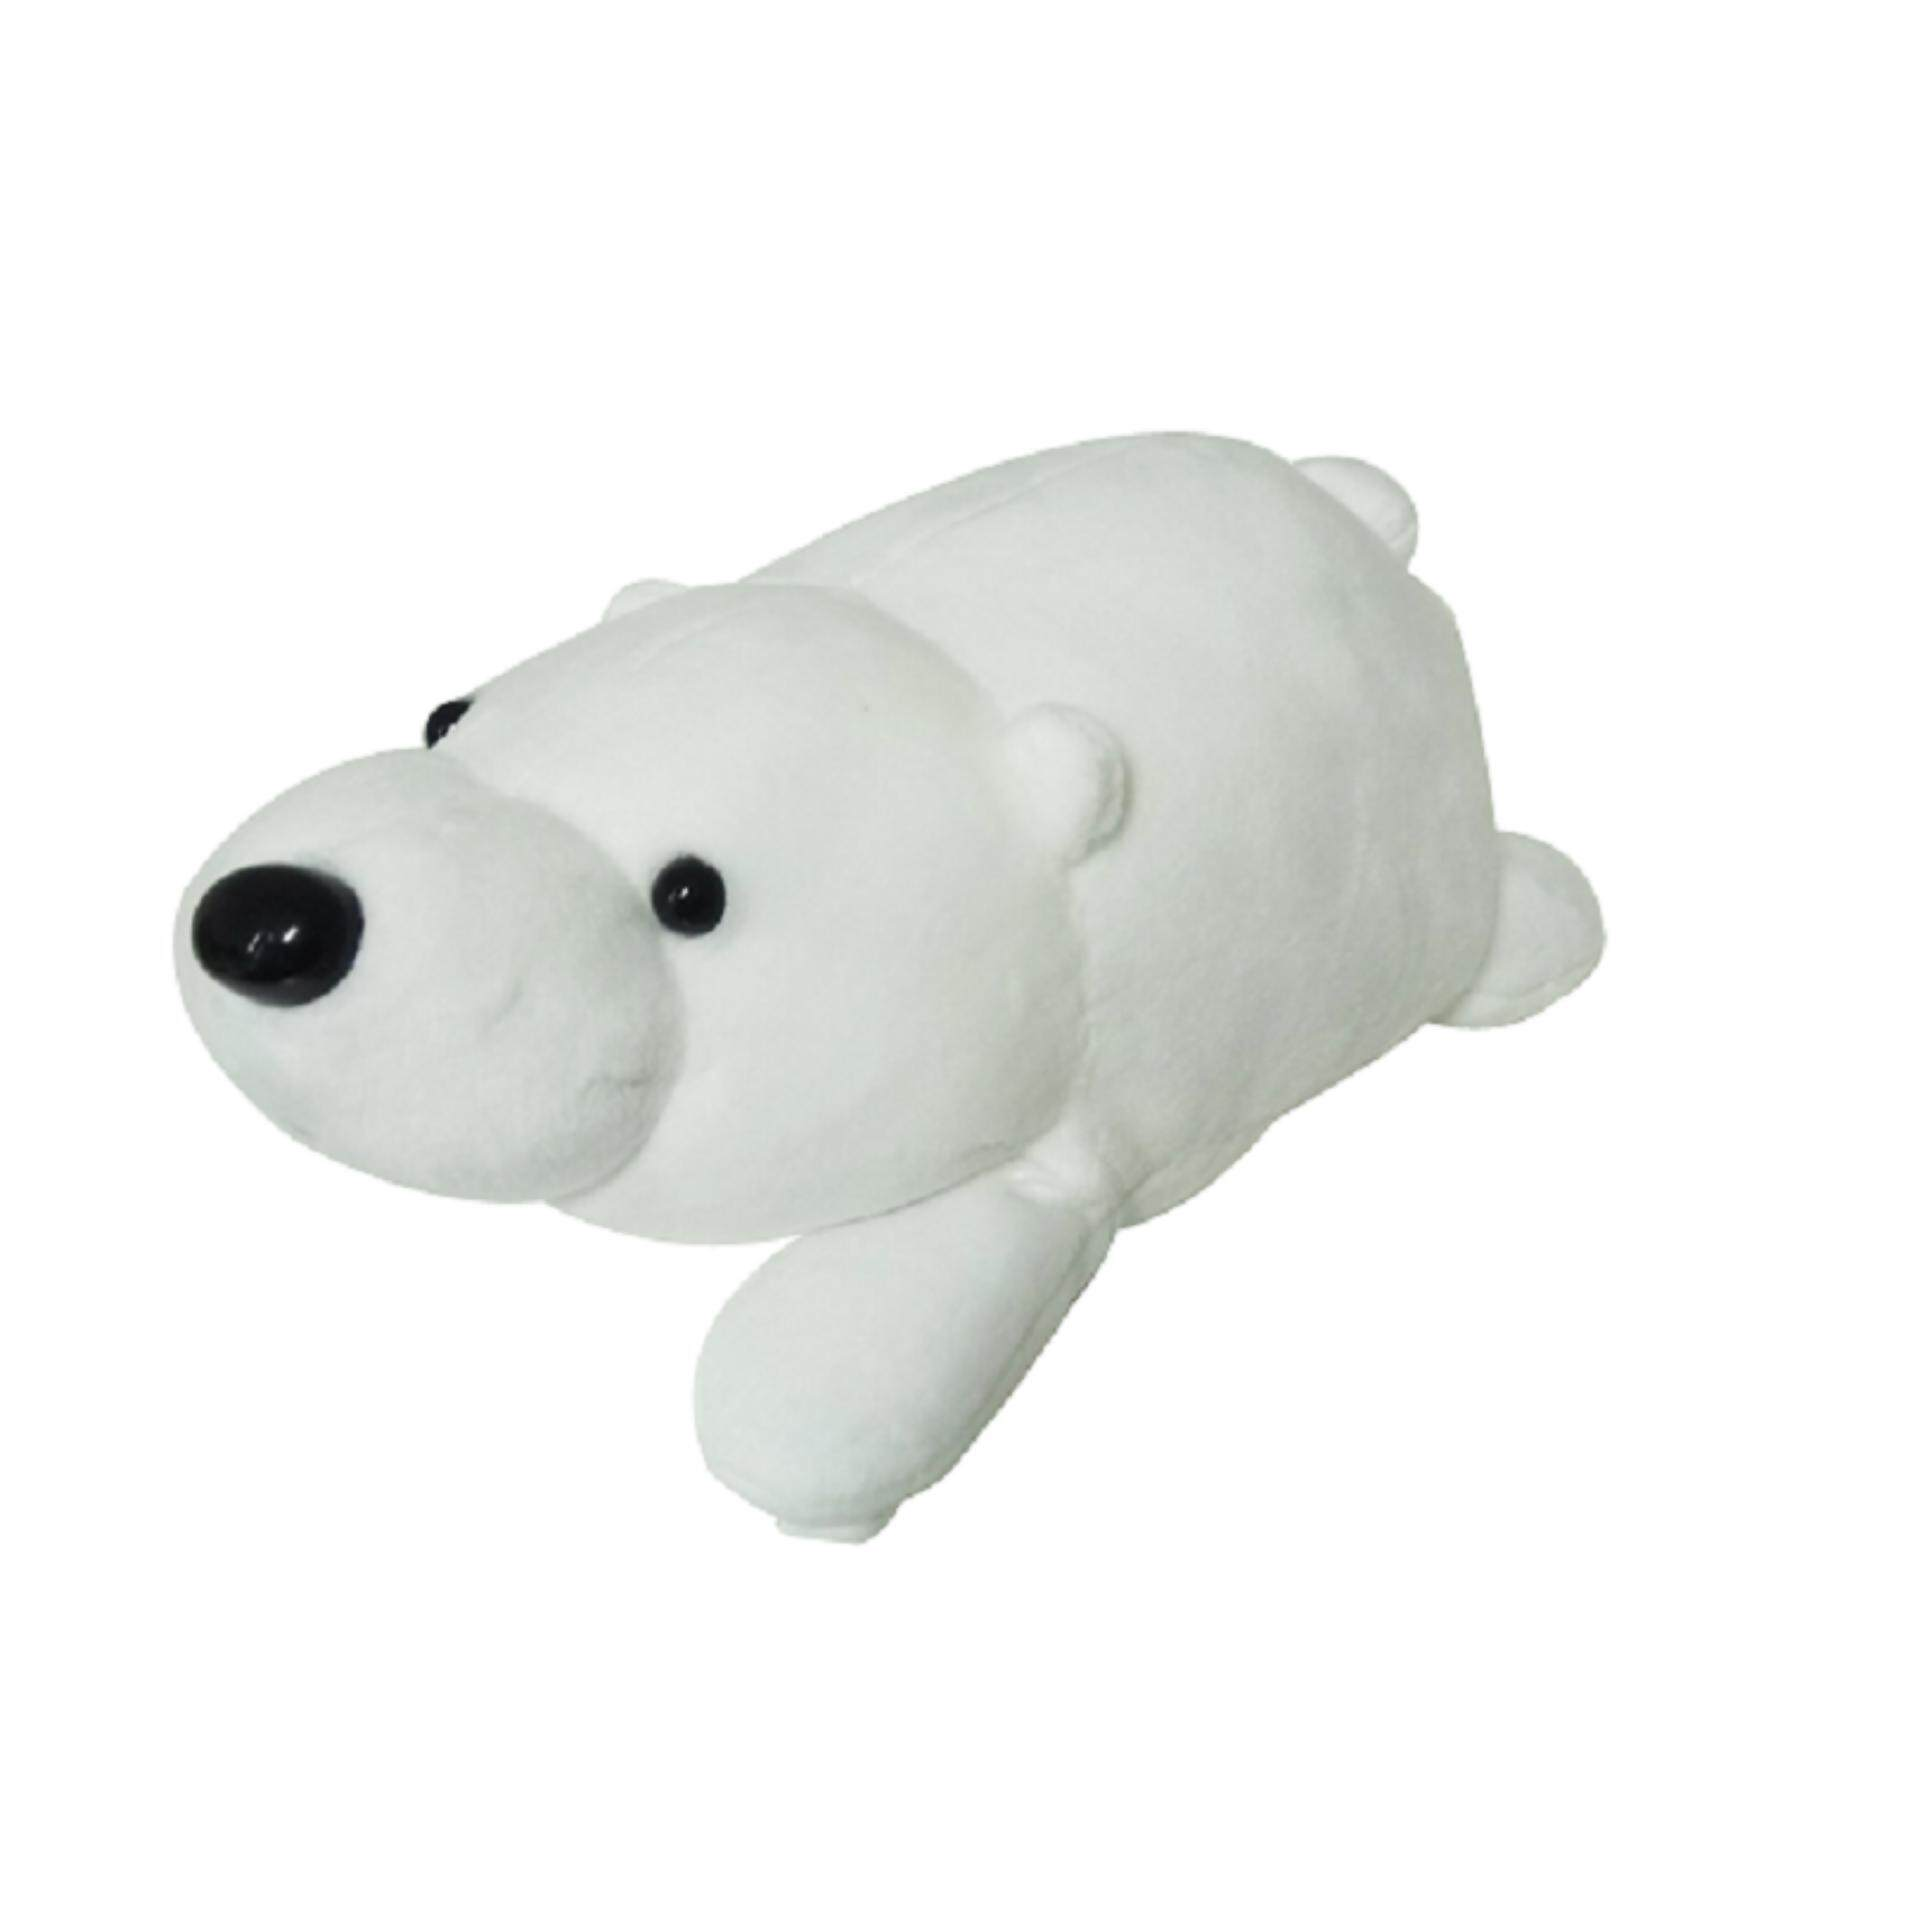 We Bare Bears Clip-On Plush Toy - Ice Bear toys for girls